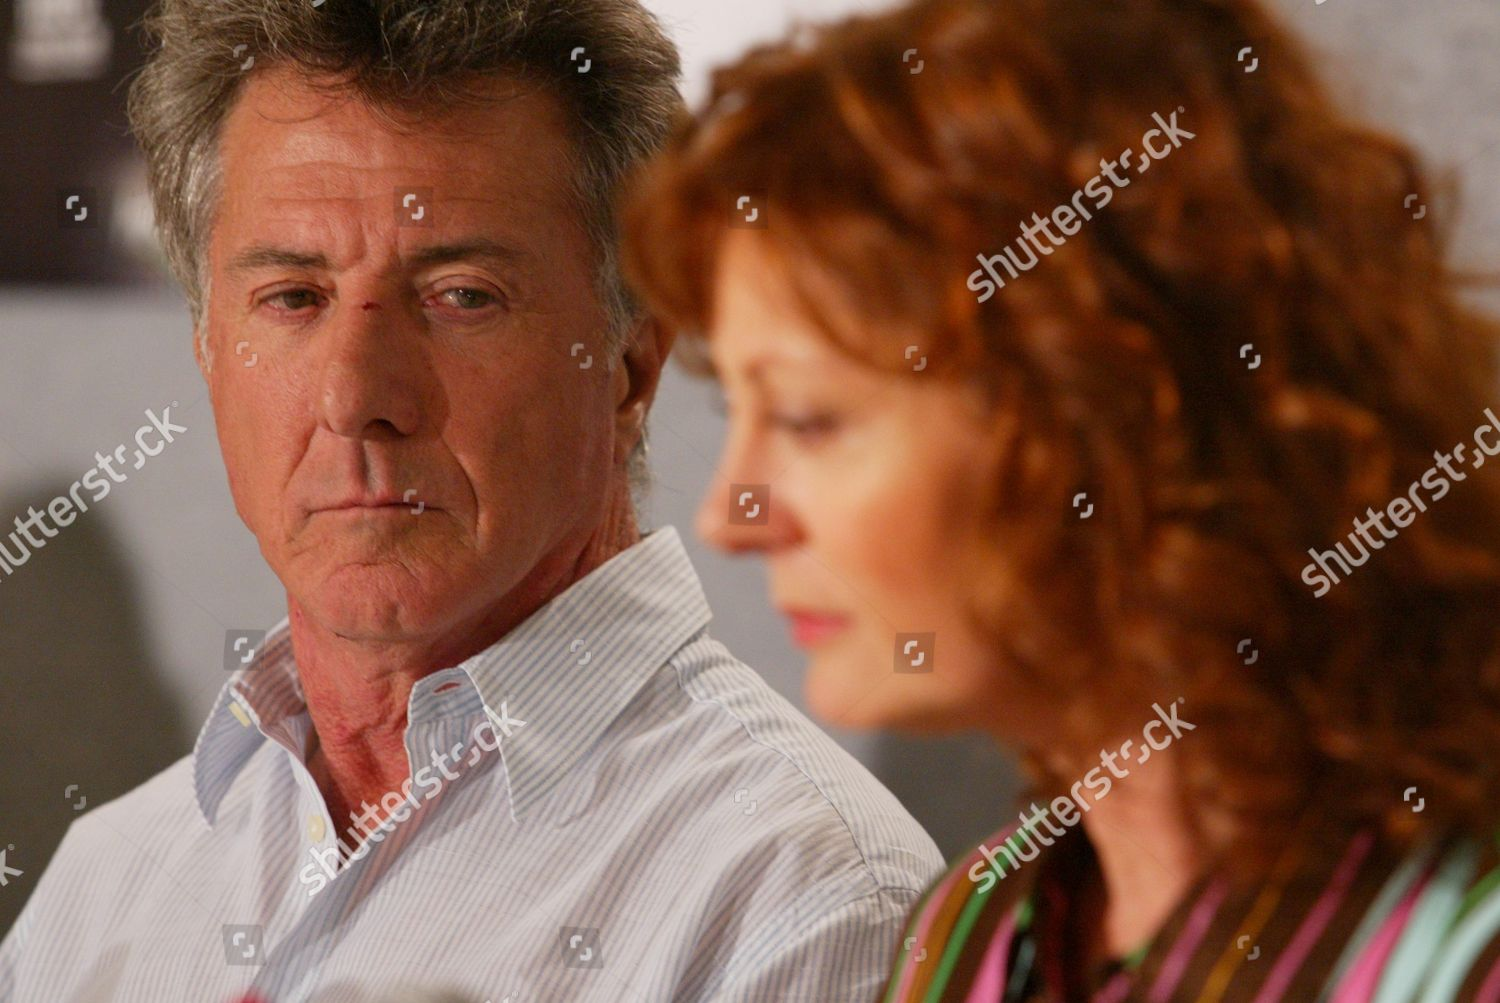 cafd82f797 Dustin Hoffman Susan Sarandon Editorial Stock Photo - Stock Image ...